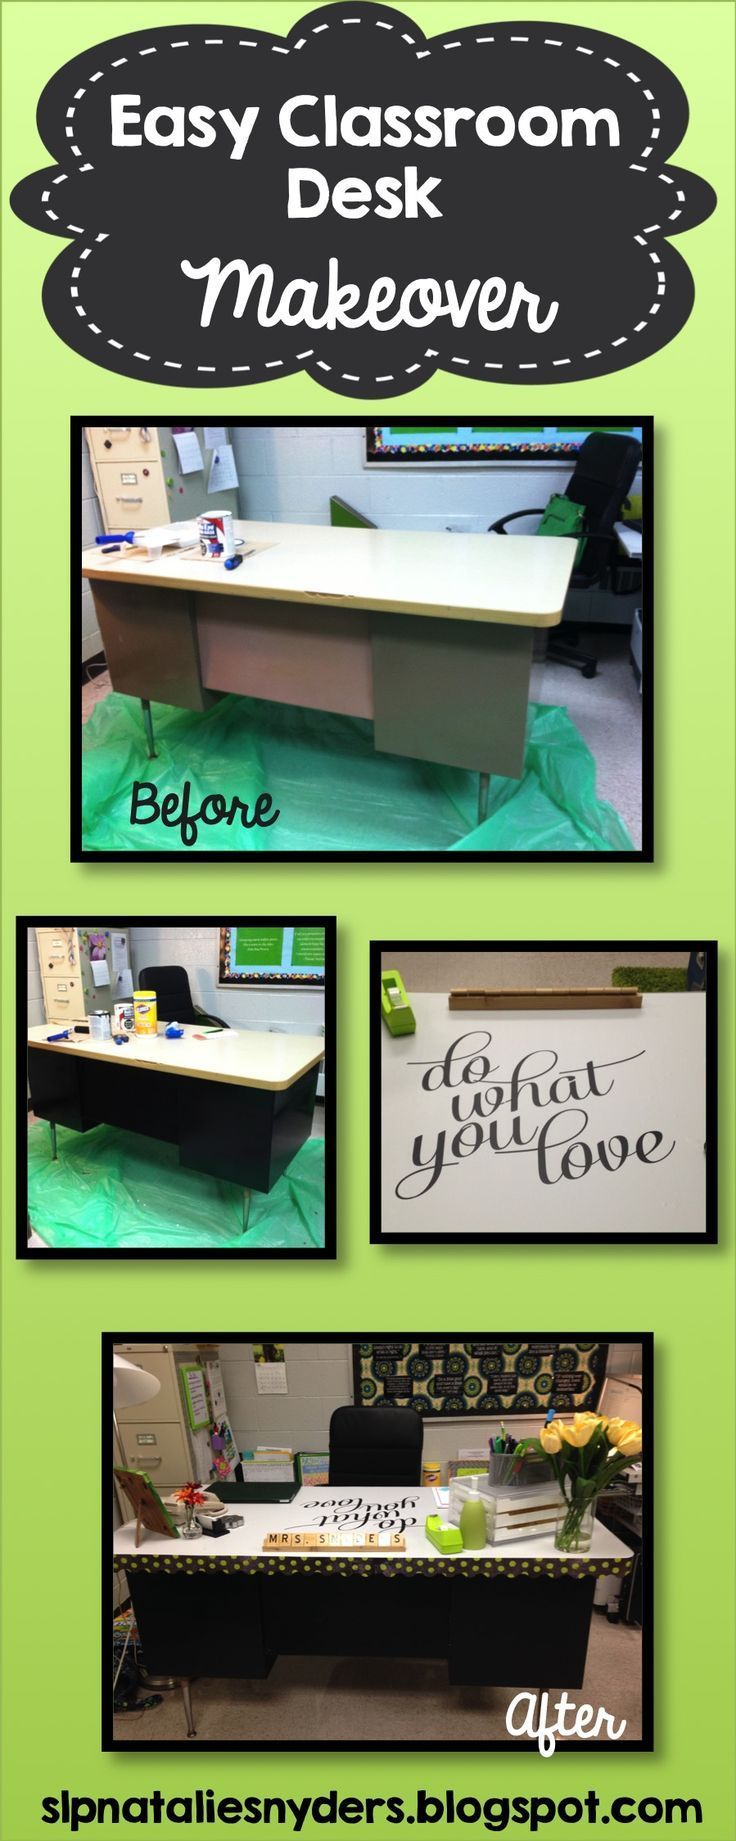 Best place to buy contact paper - A Little Paint Contact Paper And An Inspirational Vinyl